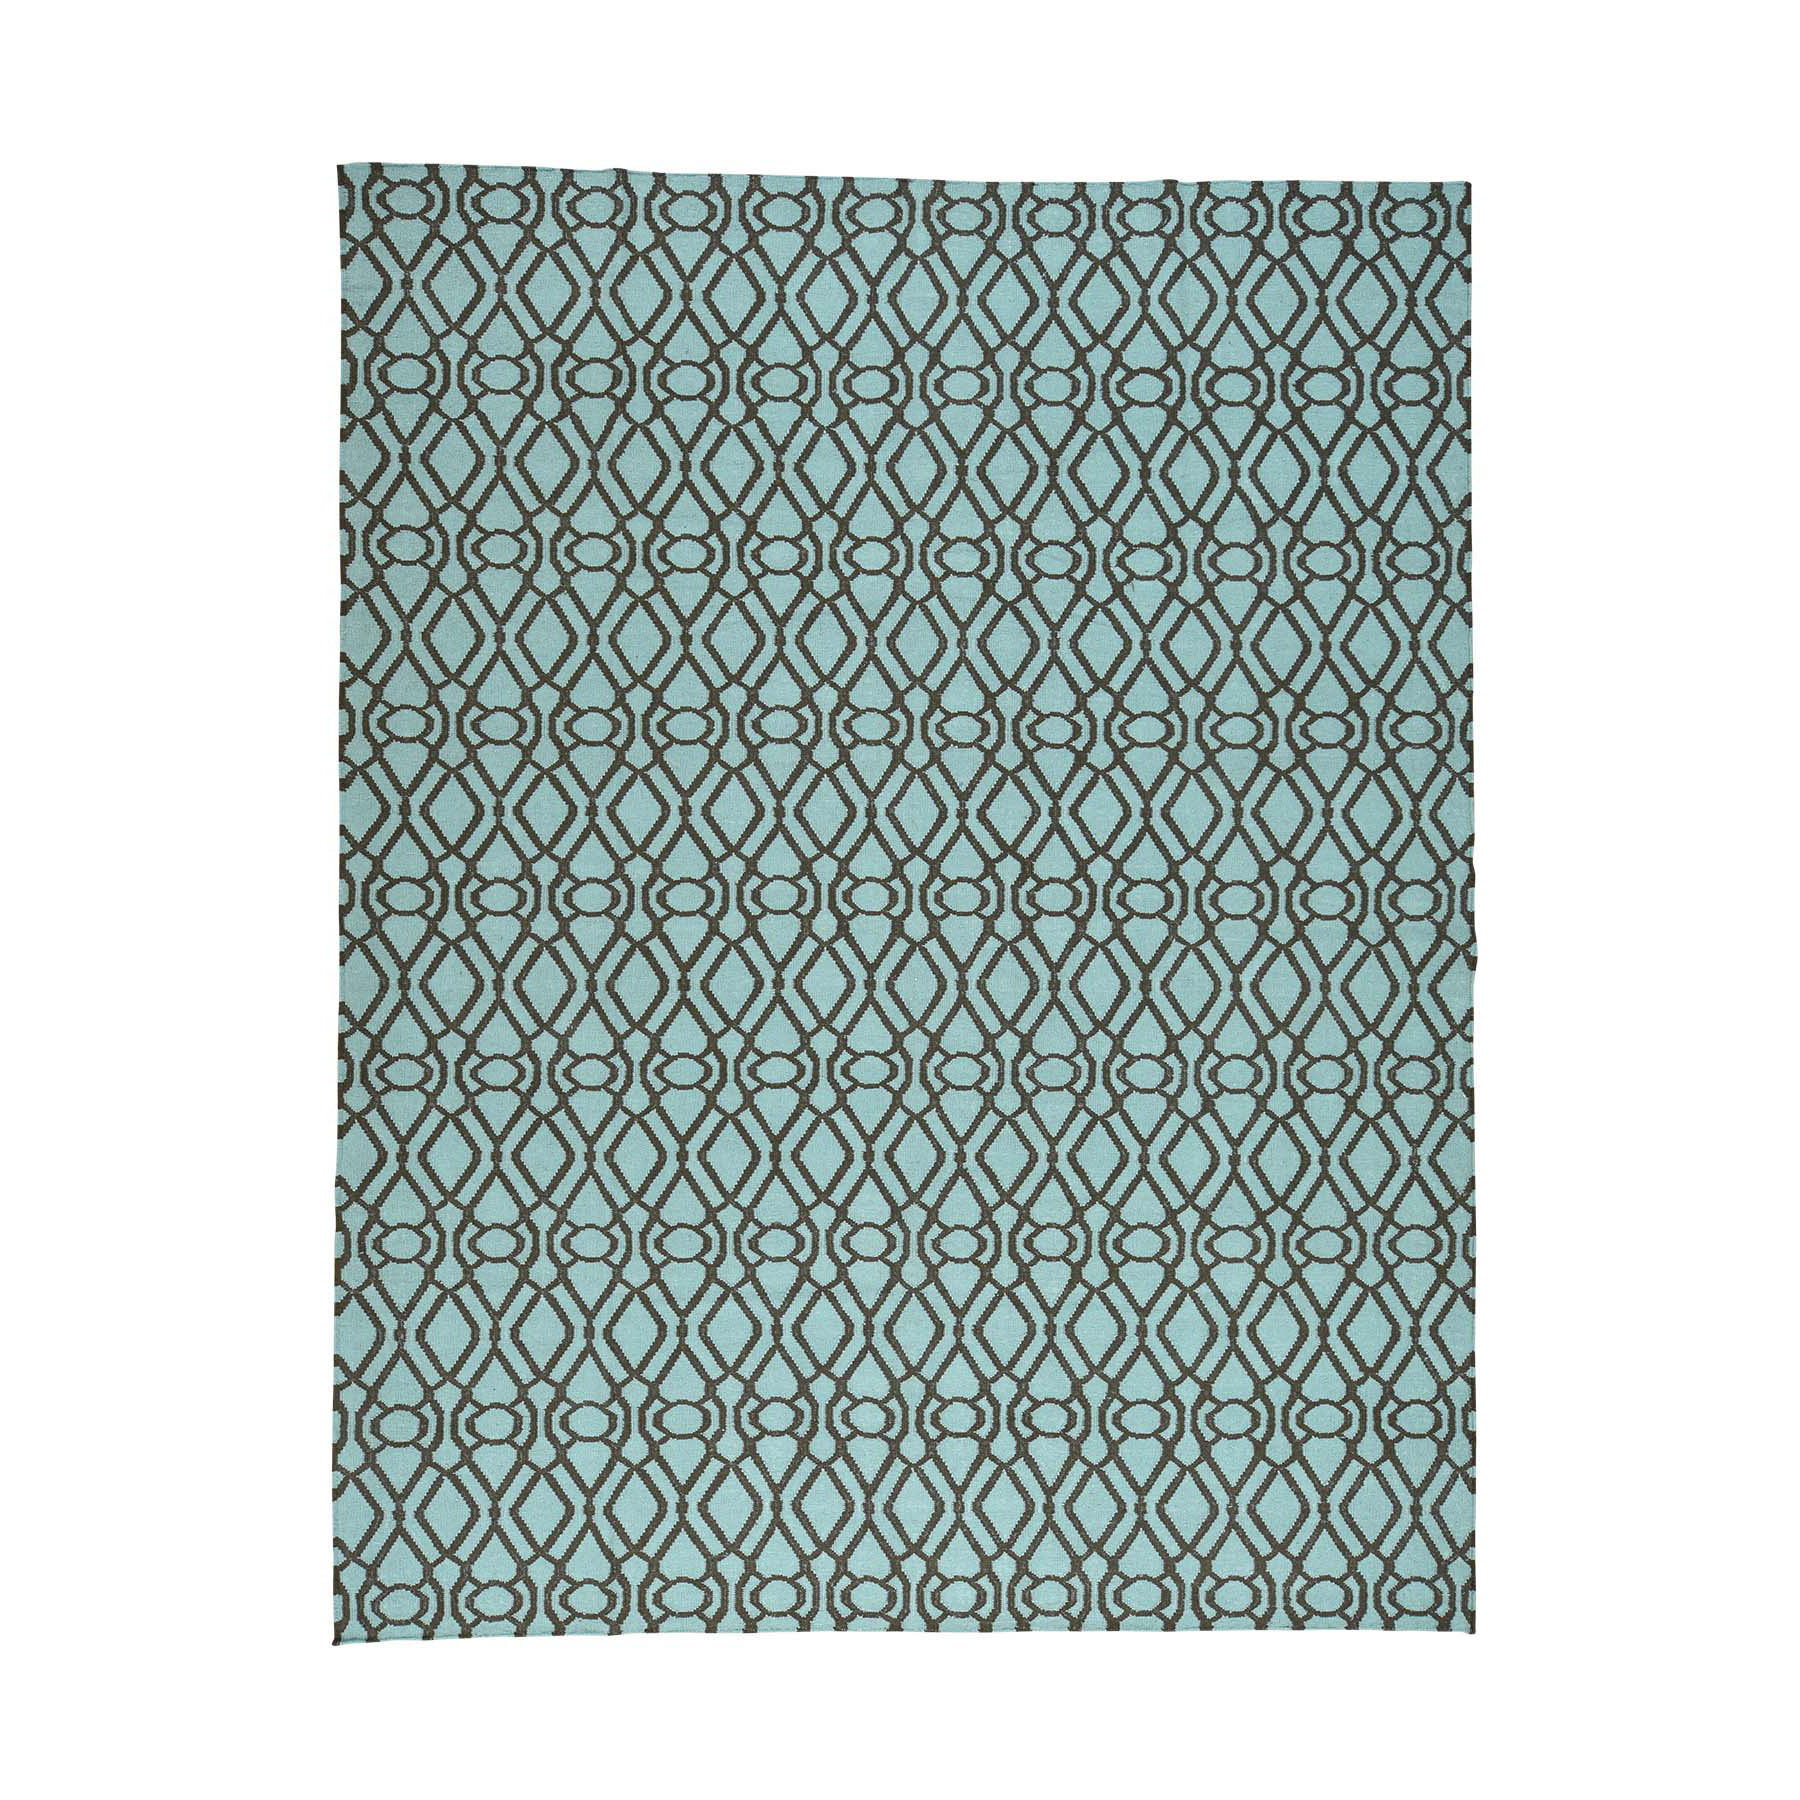 "9'3""x12' Light Green Reversible Kilim Flat Weave Hand-Woven Oriental Rug"